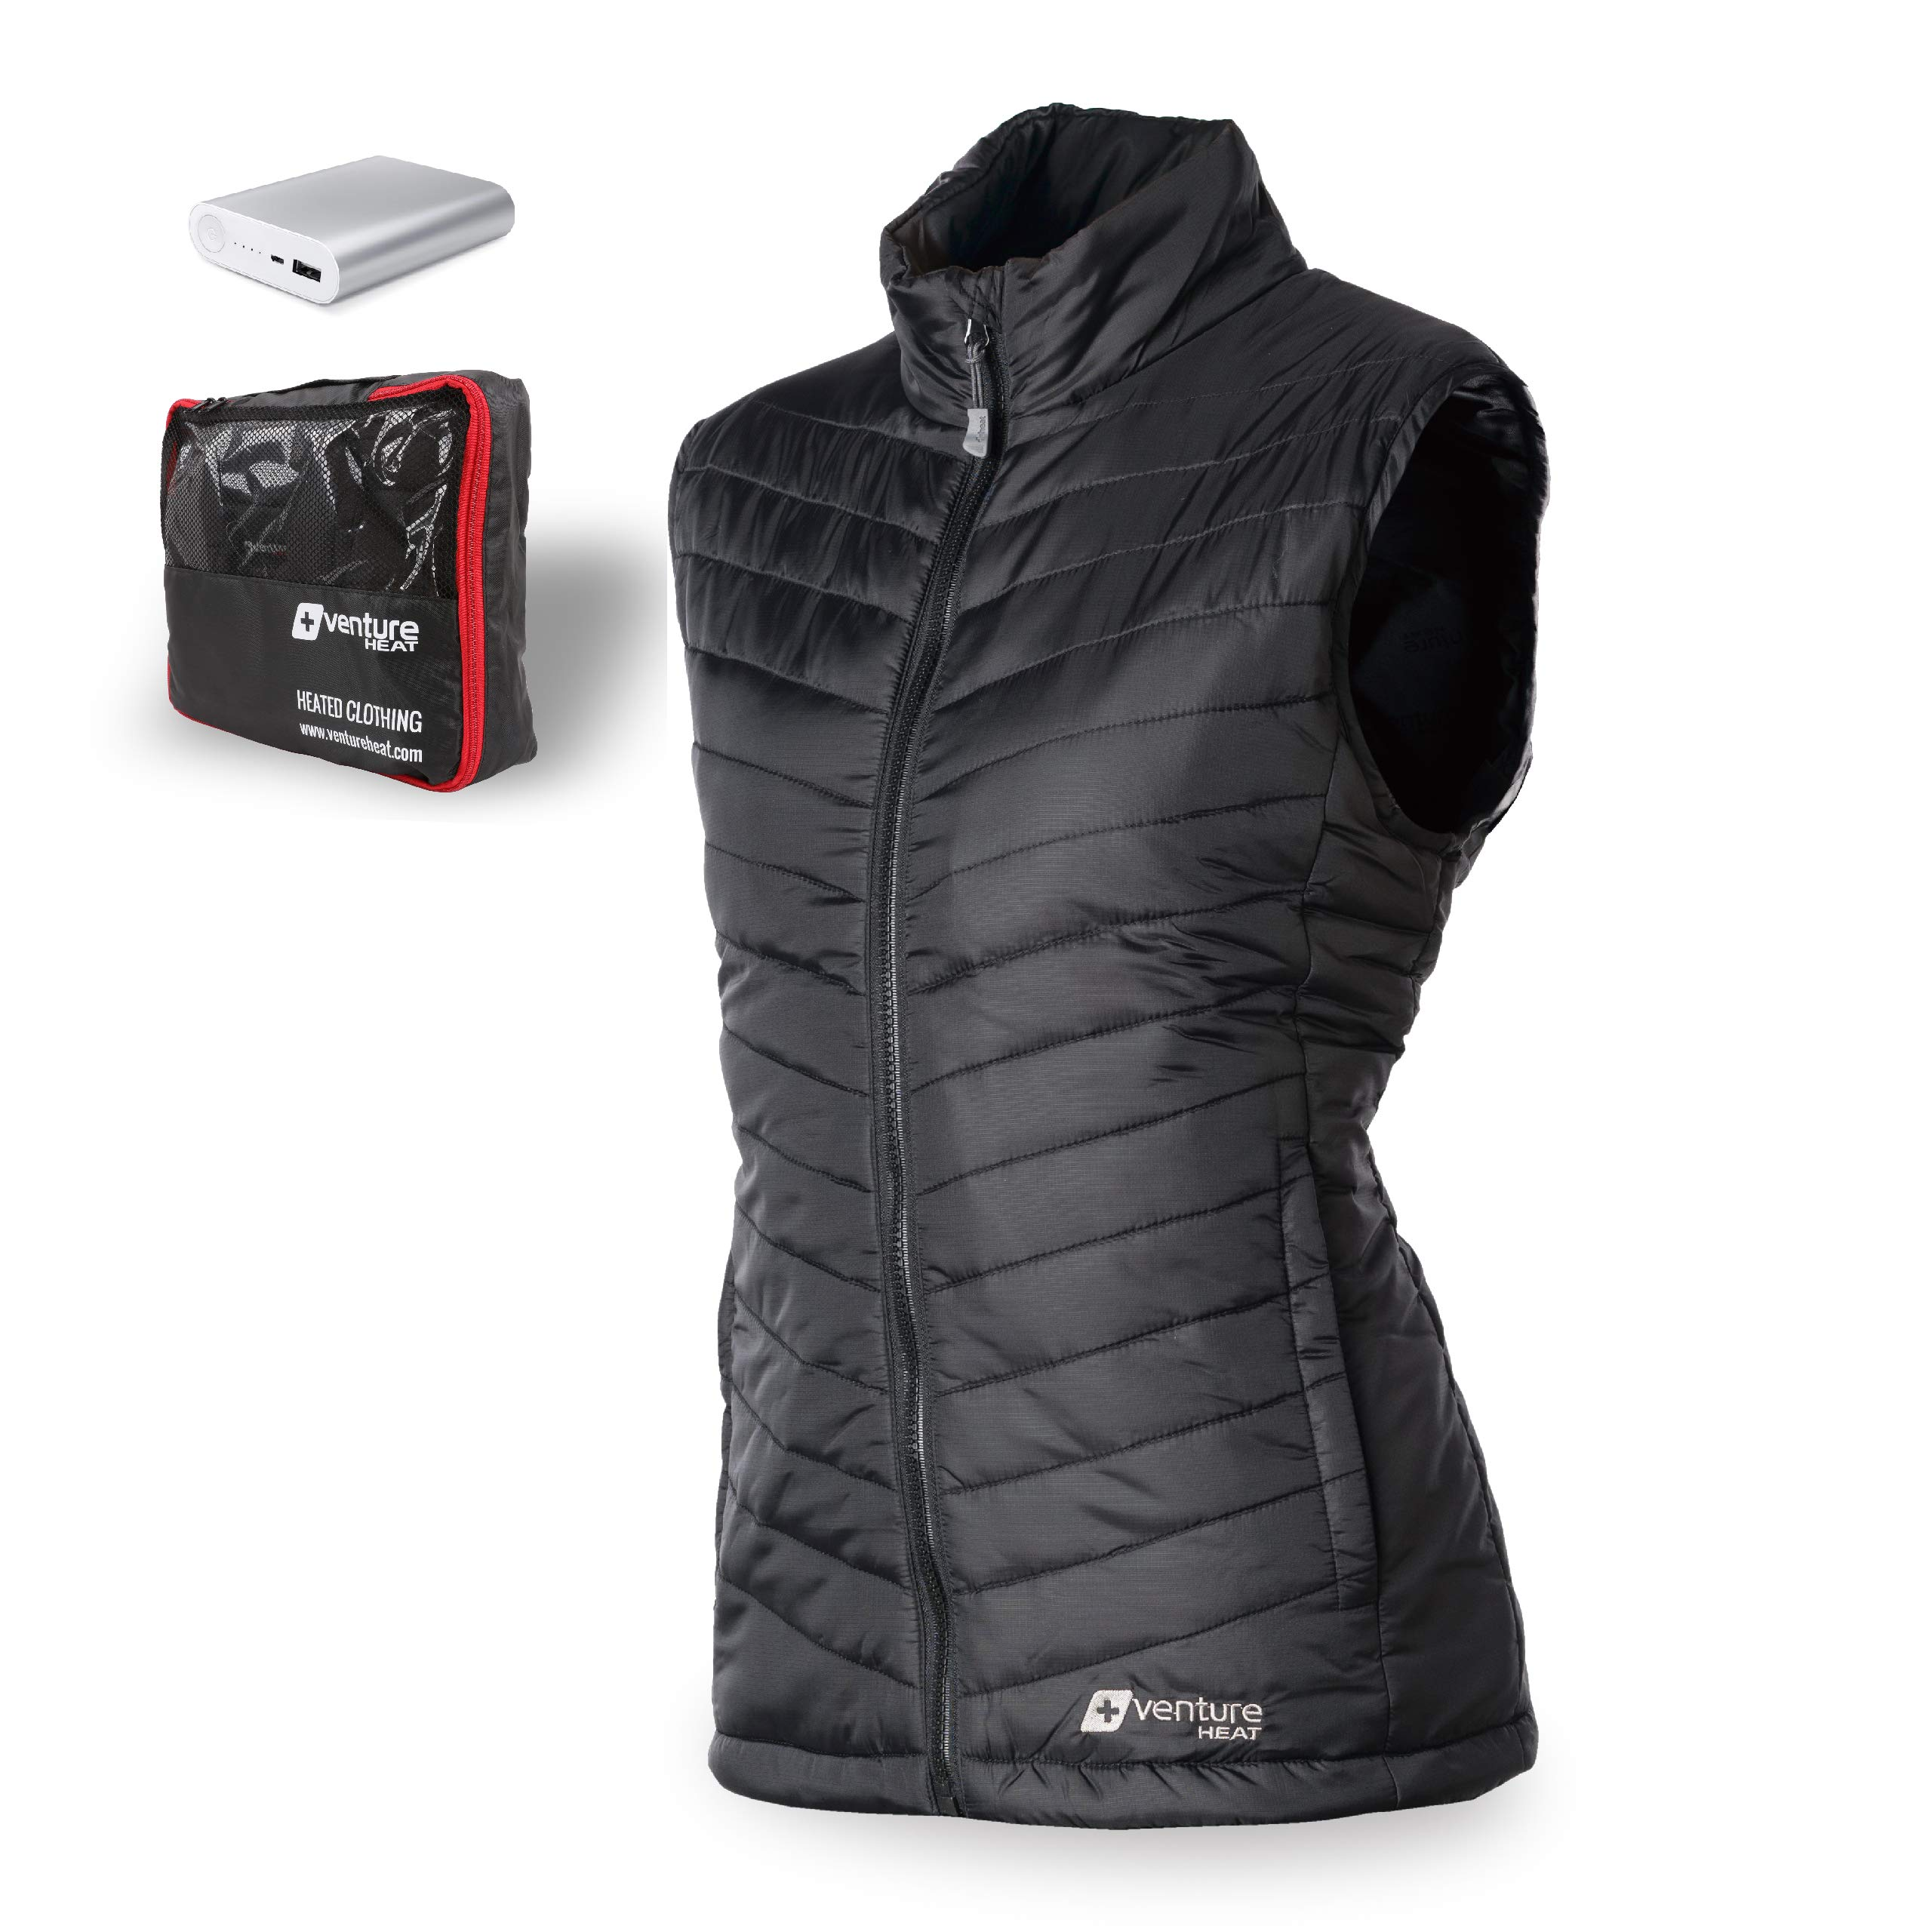 Venture Heat Women's Heated Vest with Battery 12 Hour - The Roam Puffer Heated Vest for Women, USB Powered (L, Black) by Venture Heat